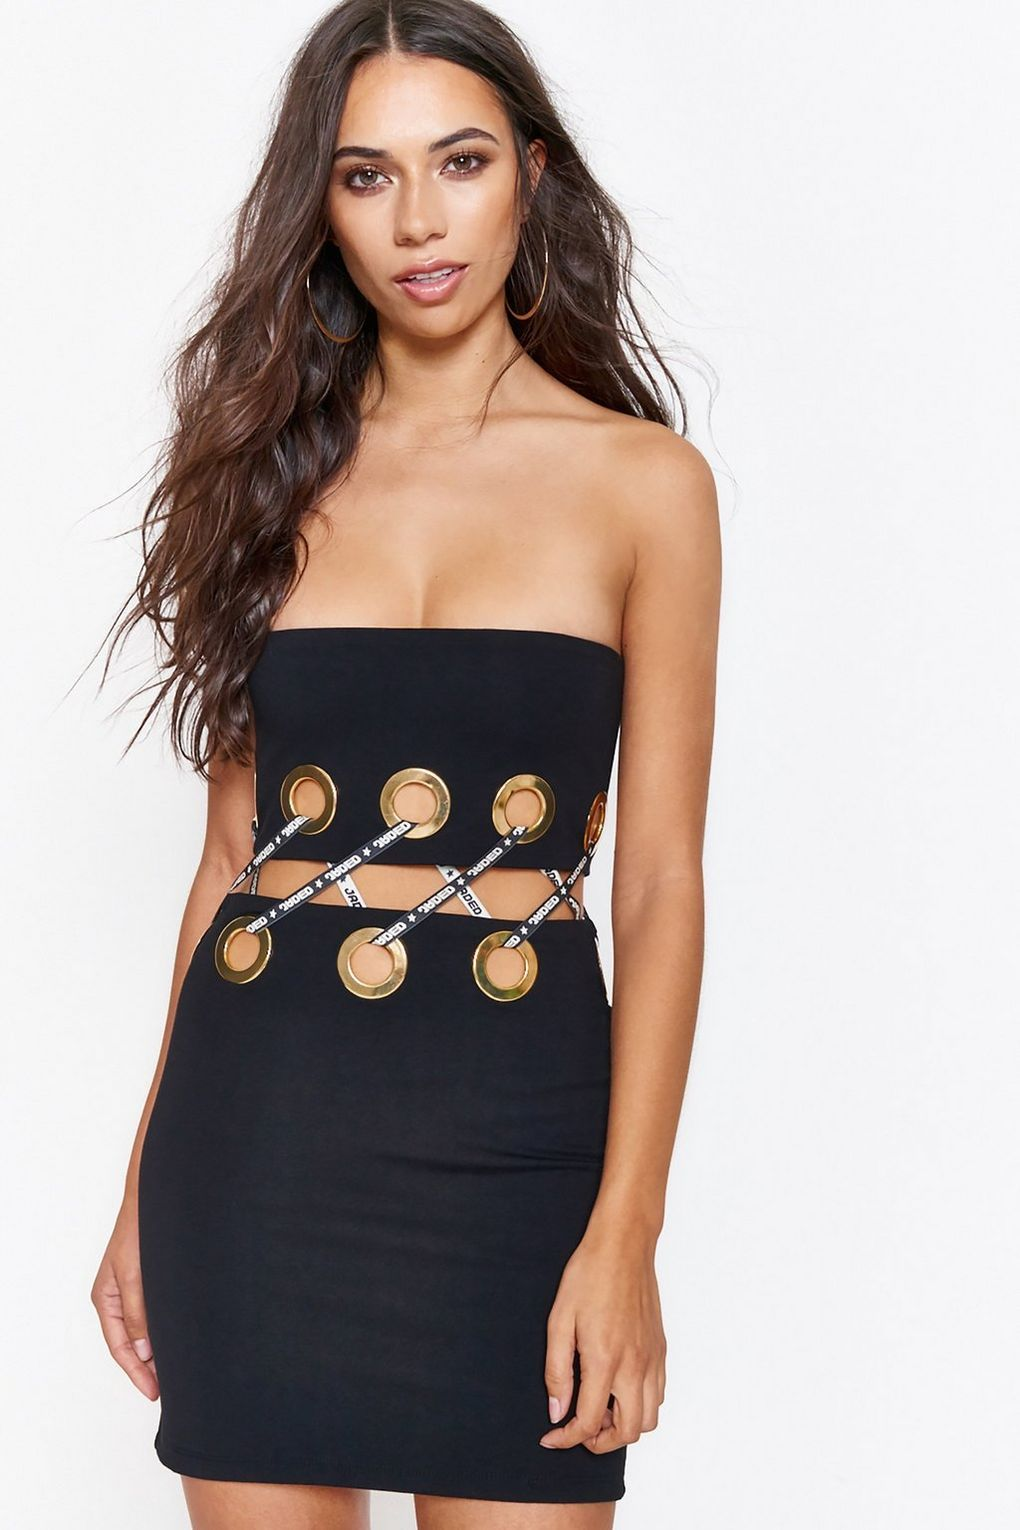 ffbe2f92c8   Bandeau Dress by Jaded London - Dresses - Clothing - Topshop